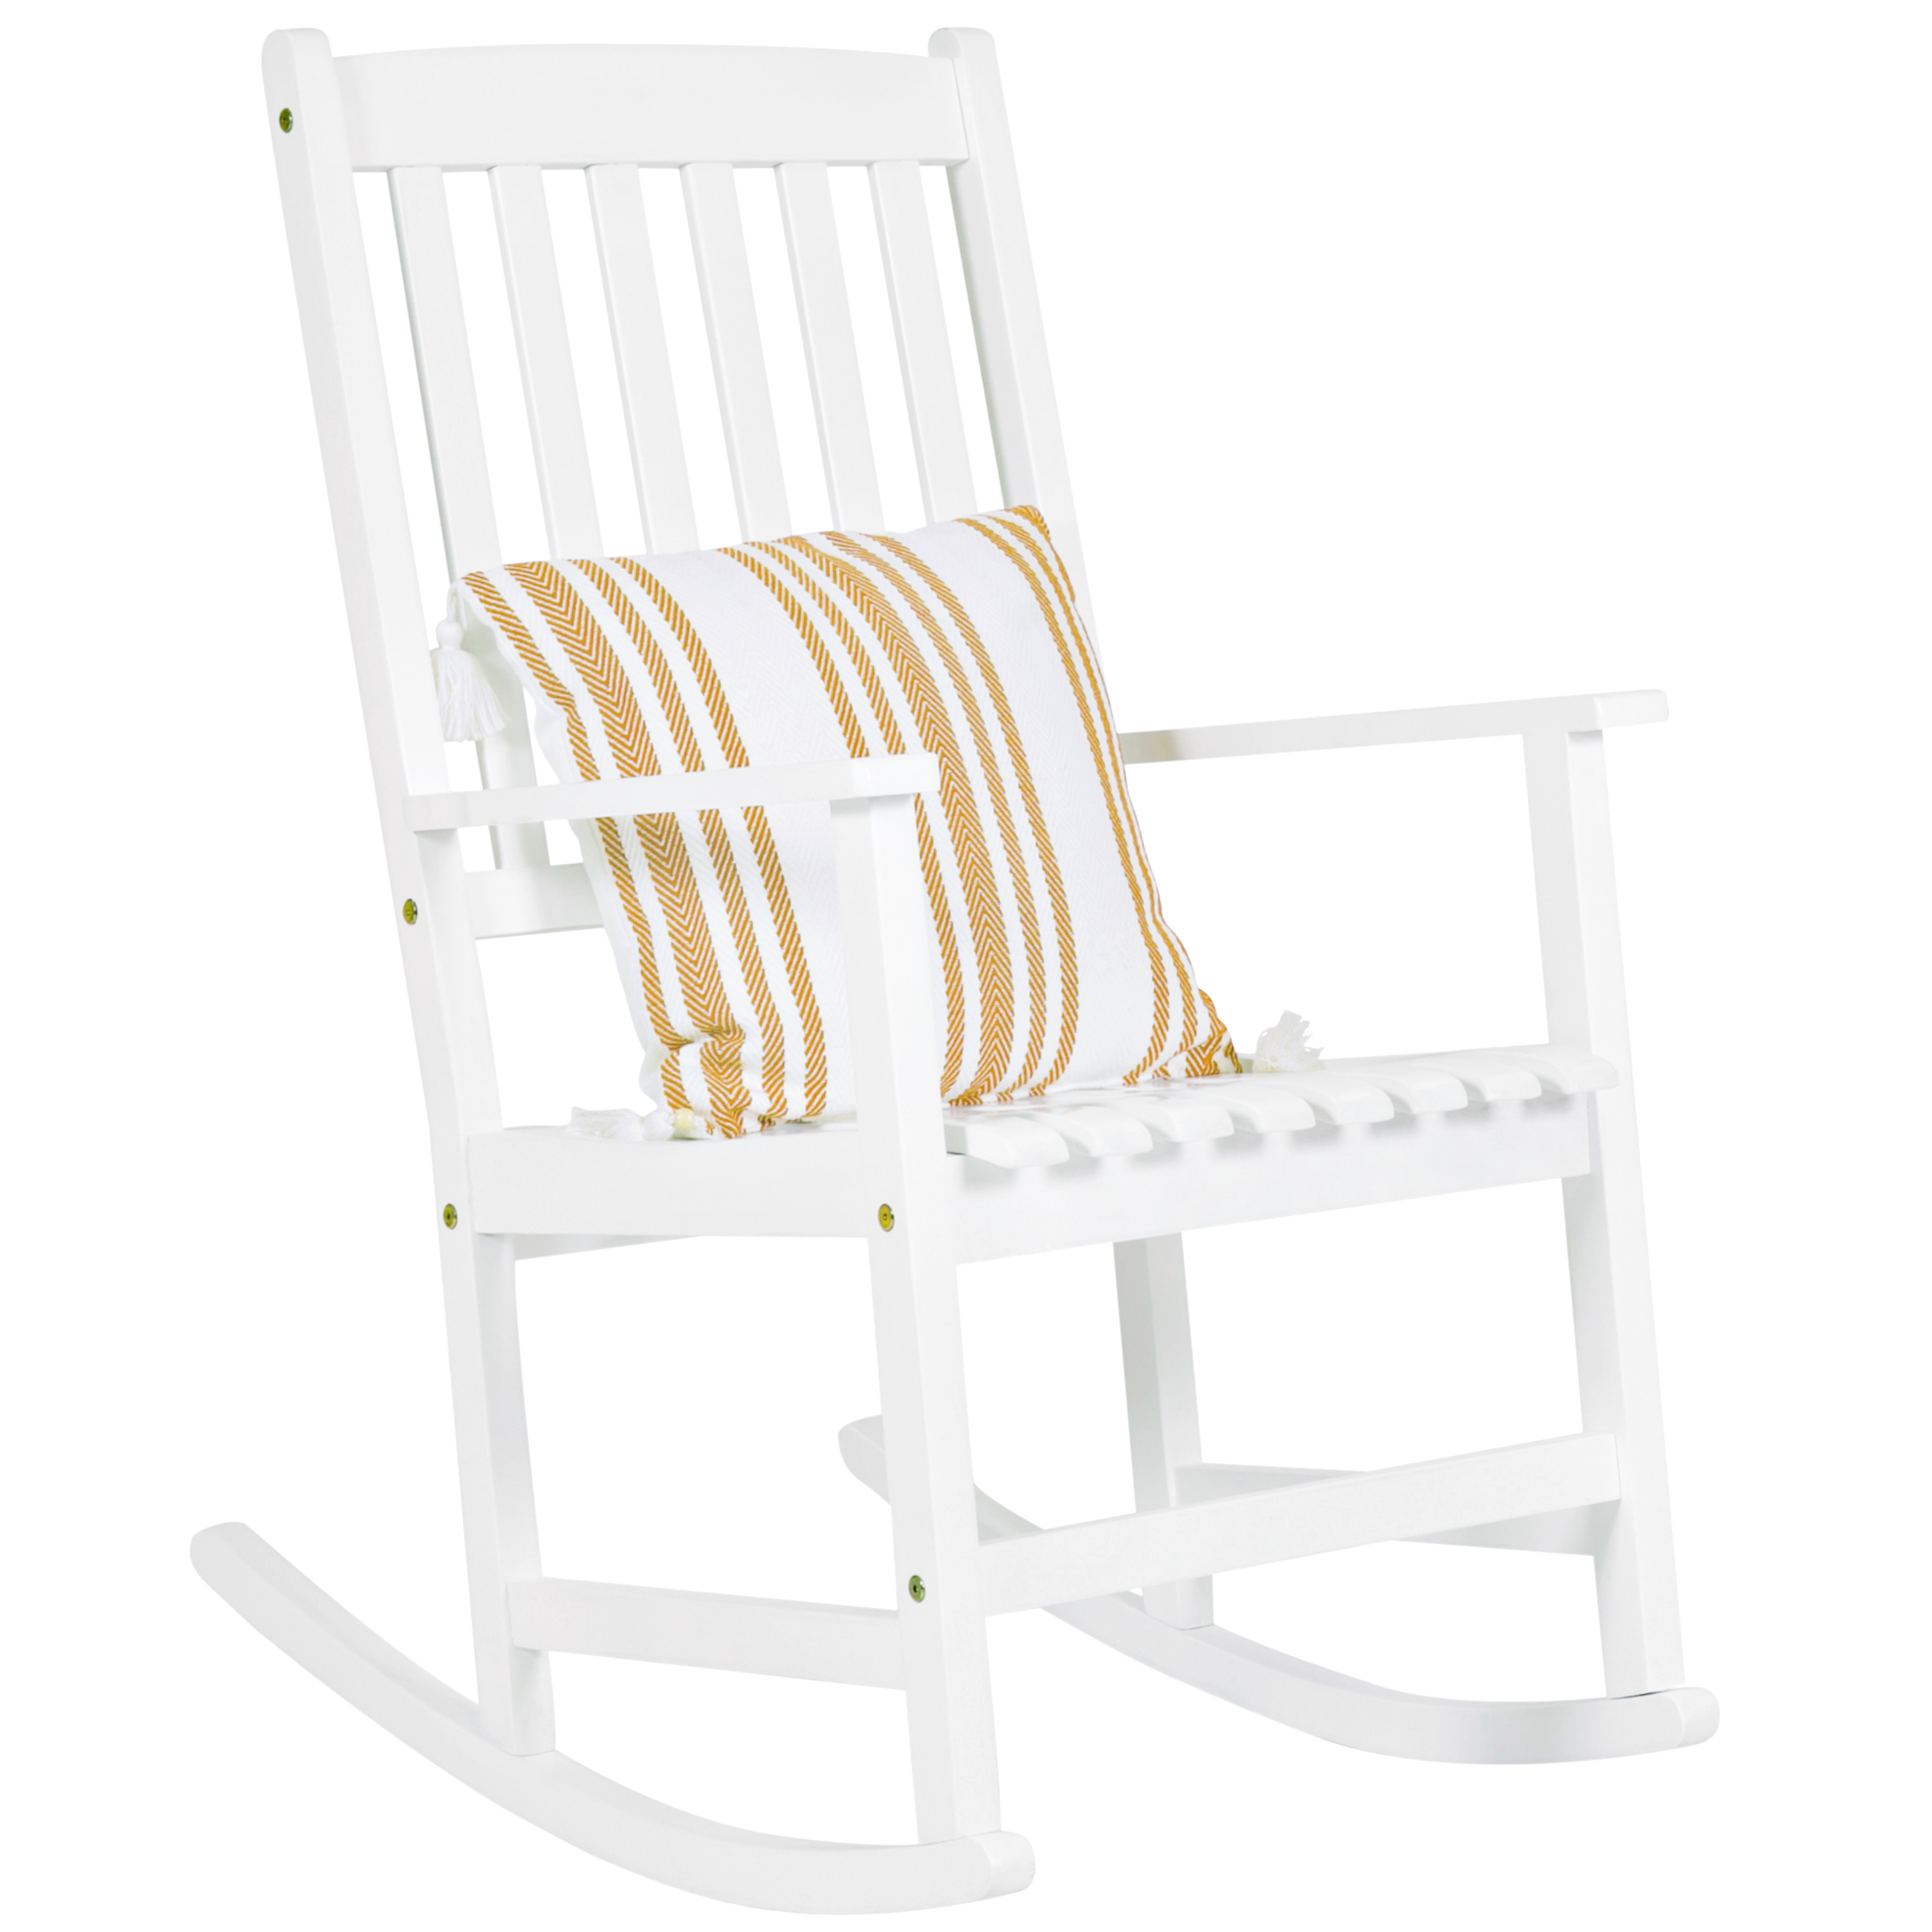 Best wood for indoor furniture Wooden Best Choice Products Indoor Outdoor Traditional Slat Wood Rocking Chair Furniture For Patio Porch Living Room White Walmart Best Choice Products Indoor Outdoor Traditional Slat Wood Rocking